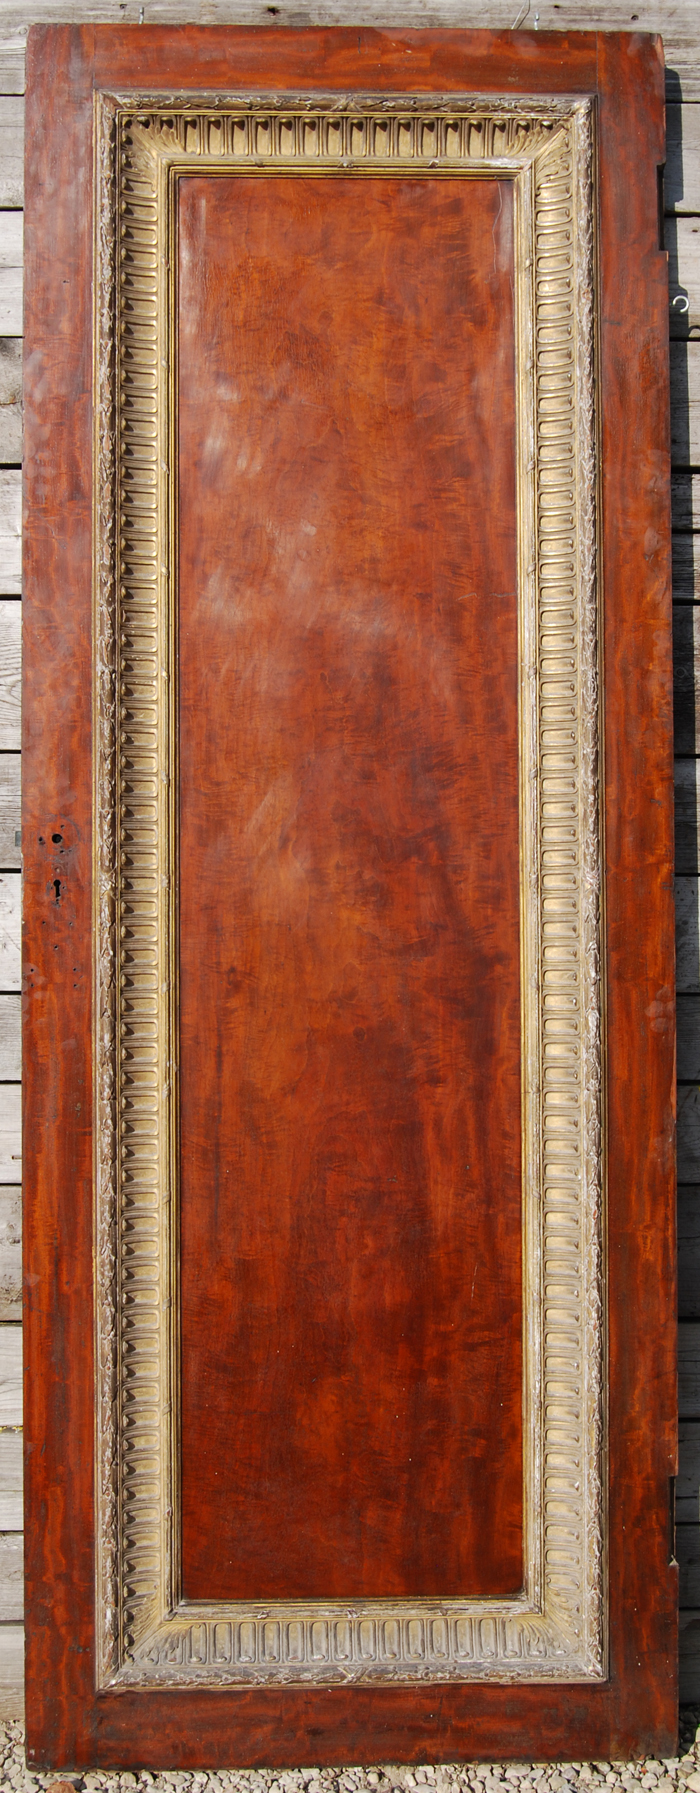 A large single panel mahogany door